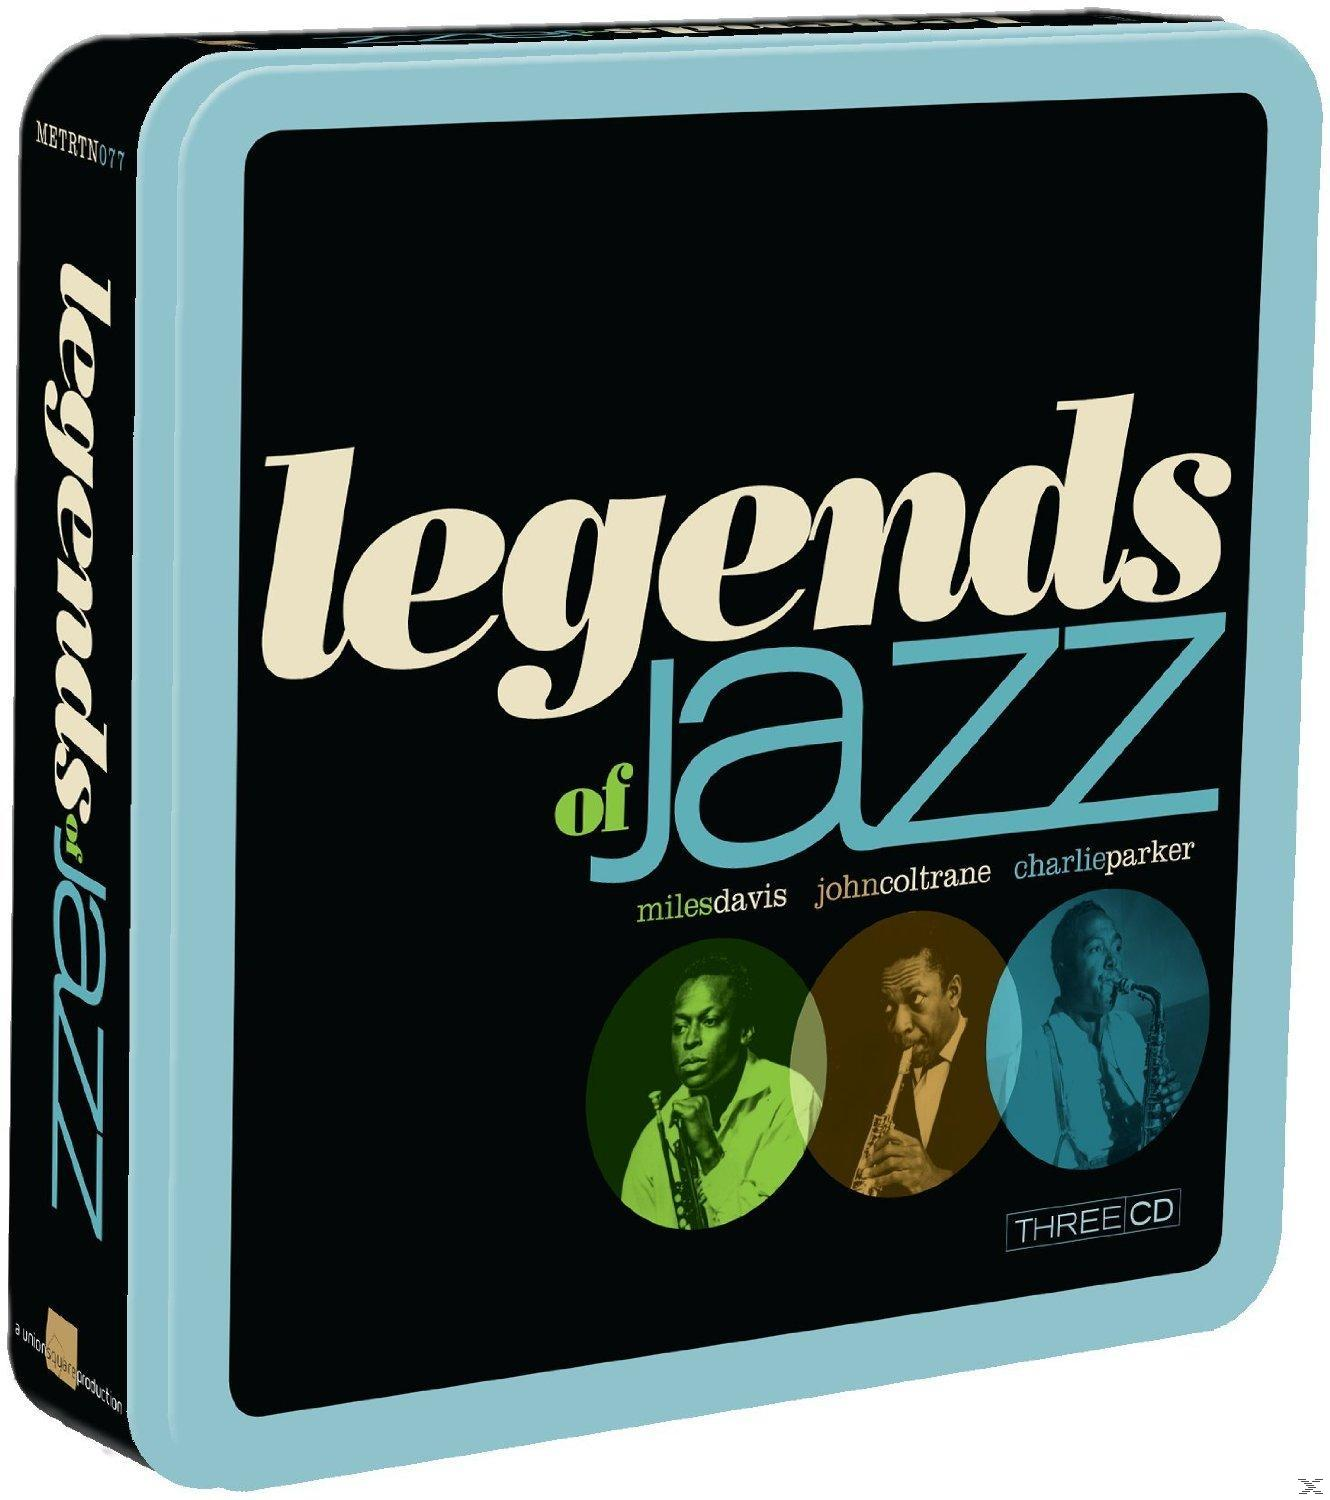 LEGENDS OF JAZZ (3CD)